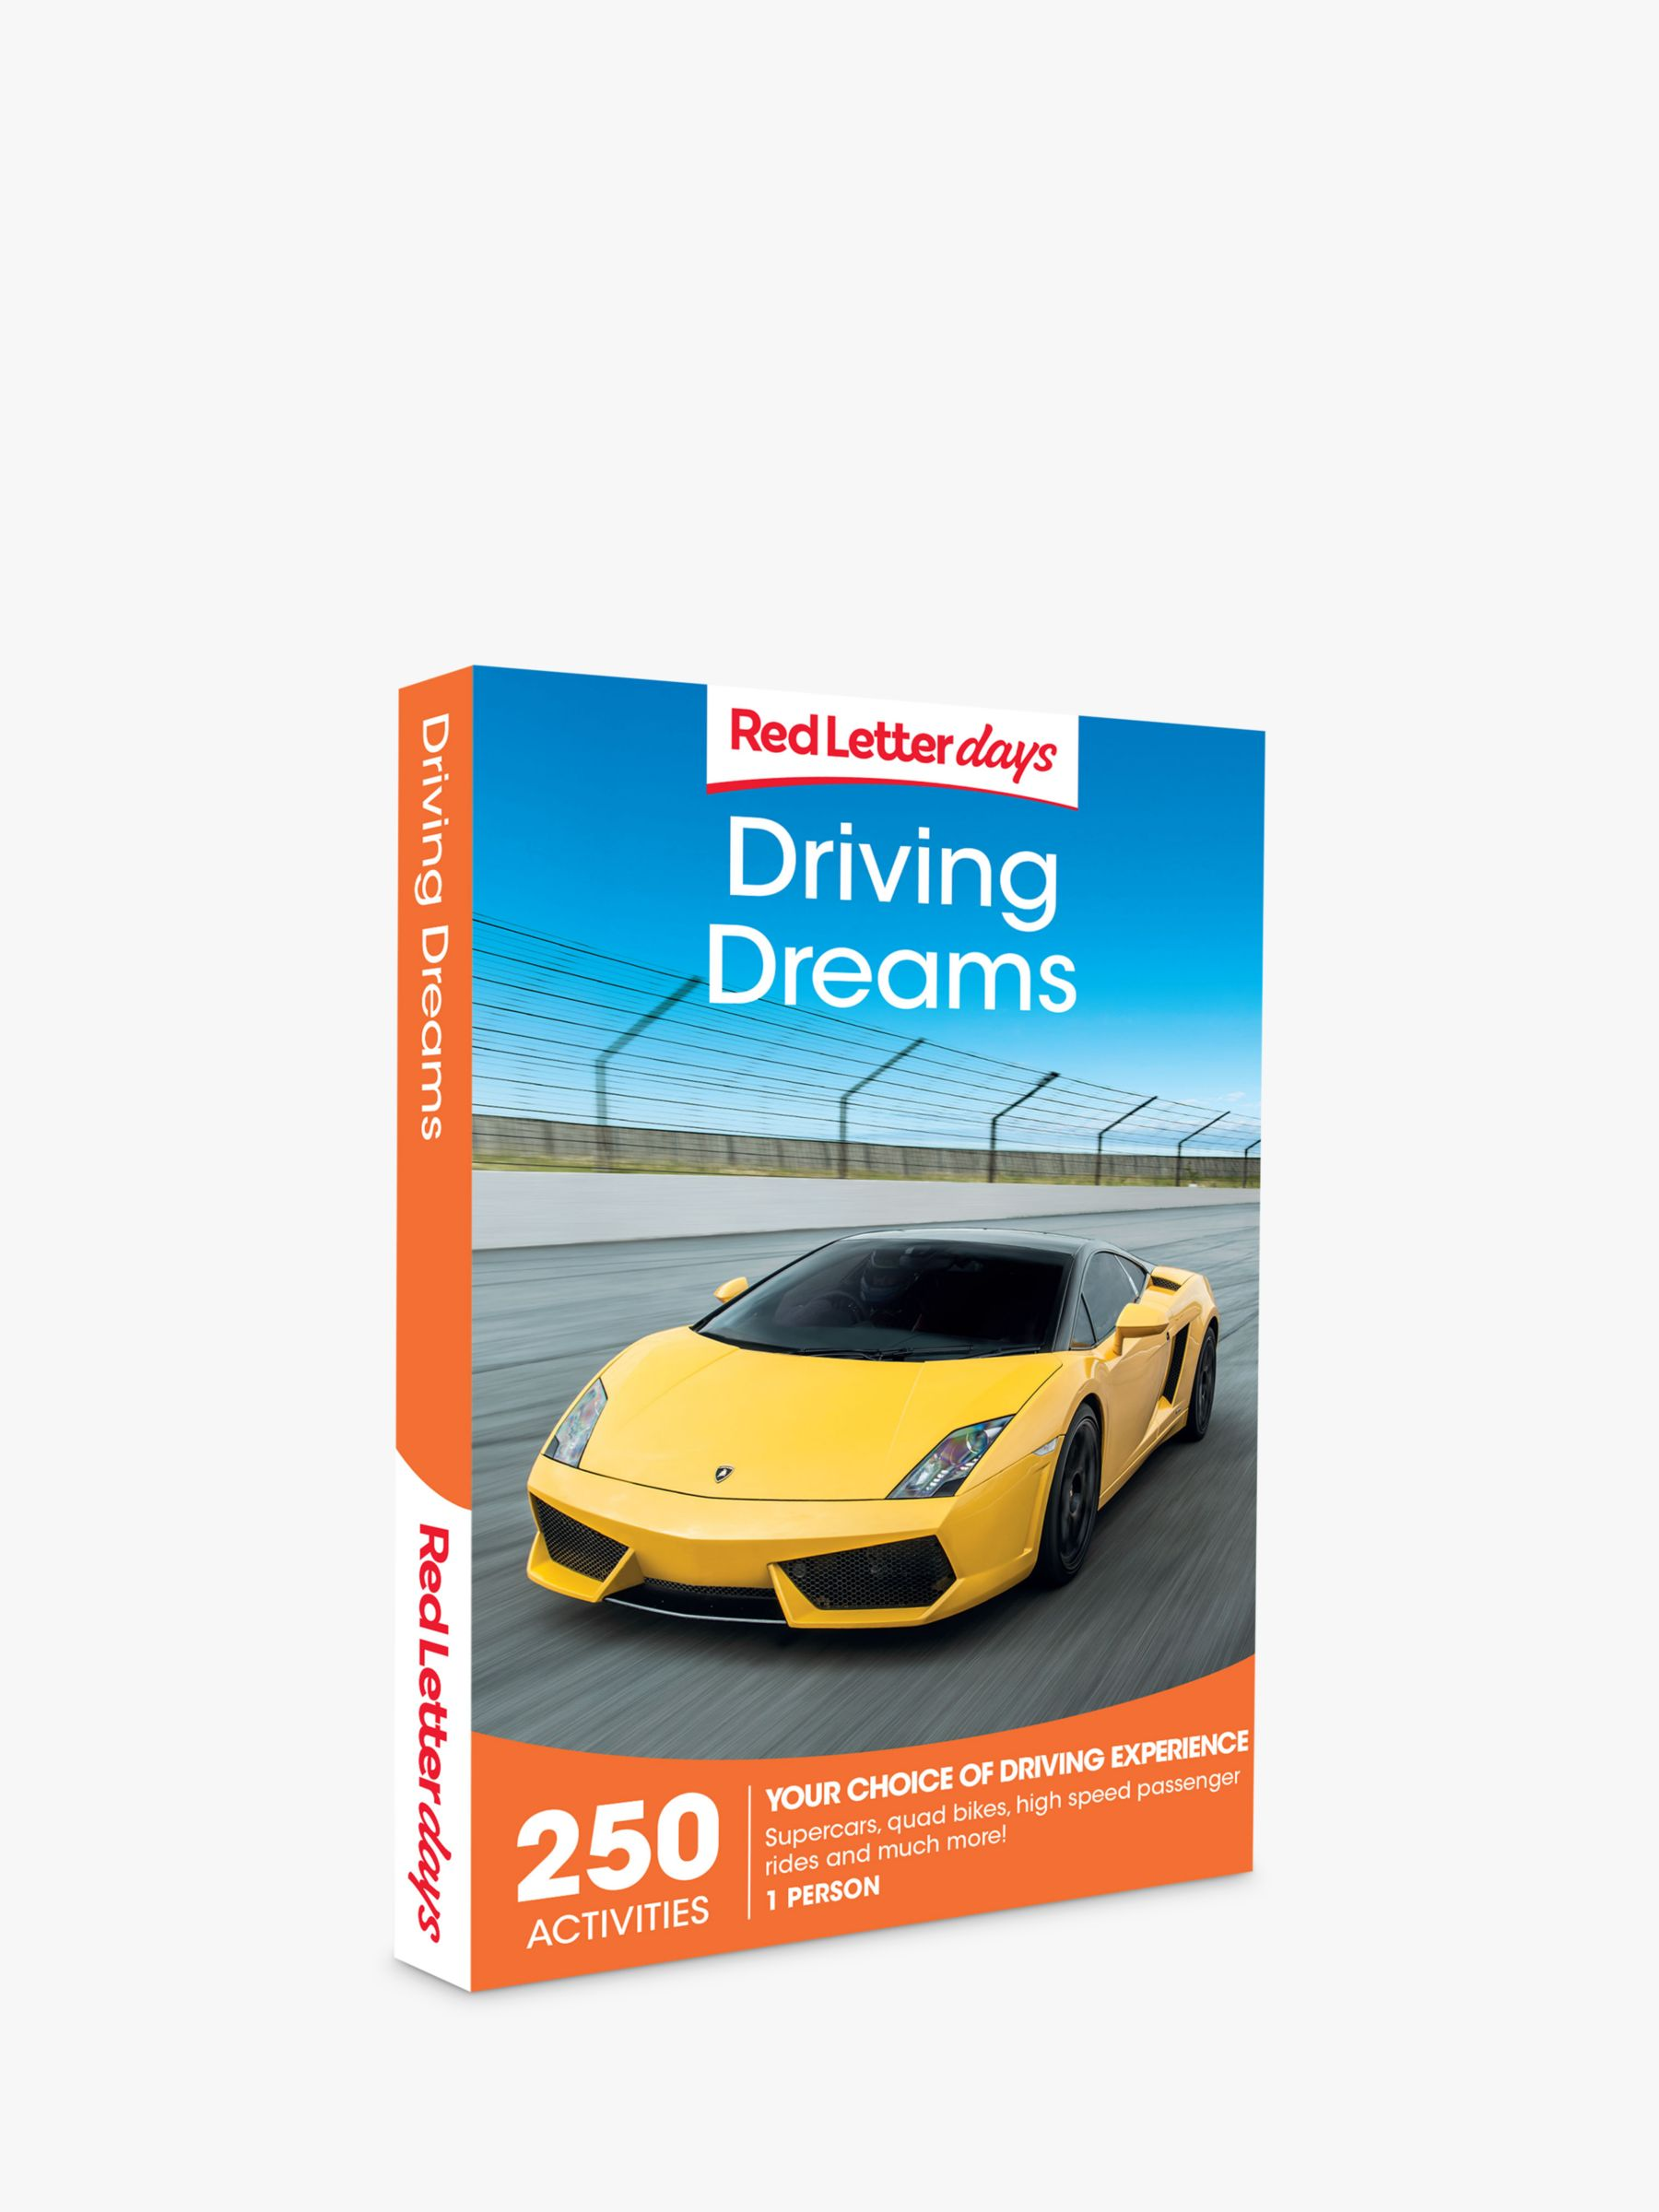 Red Letter Days Red Letter Days Driving Dreams Gift Experience